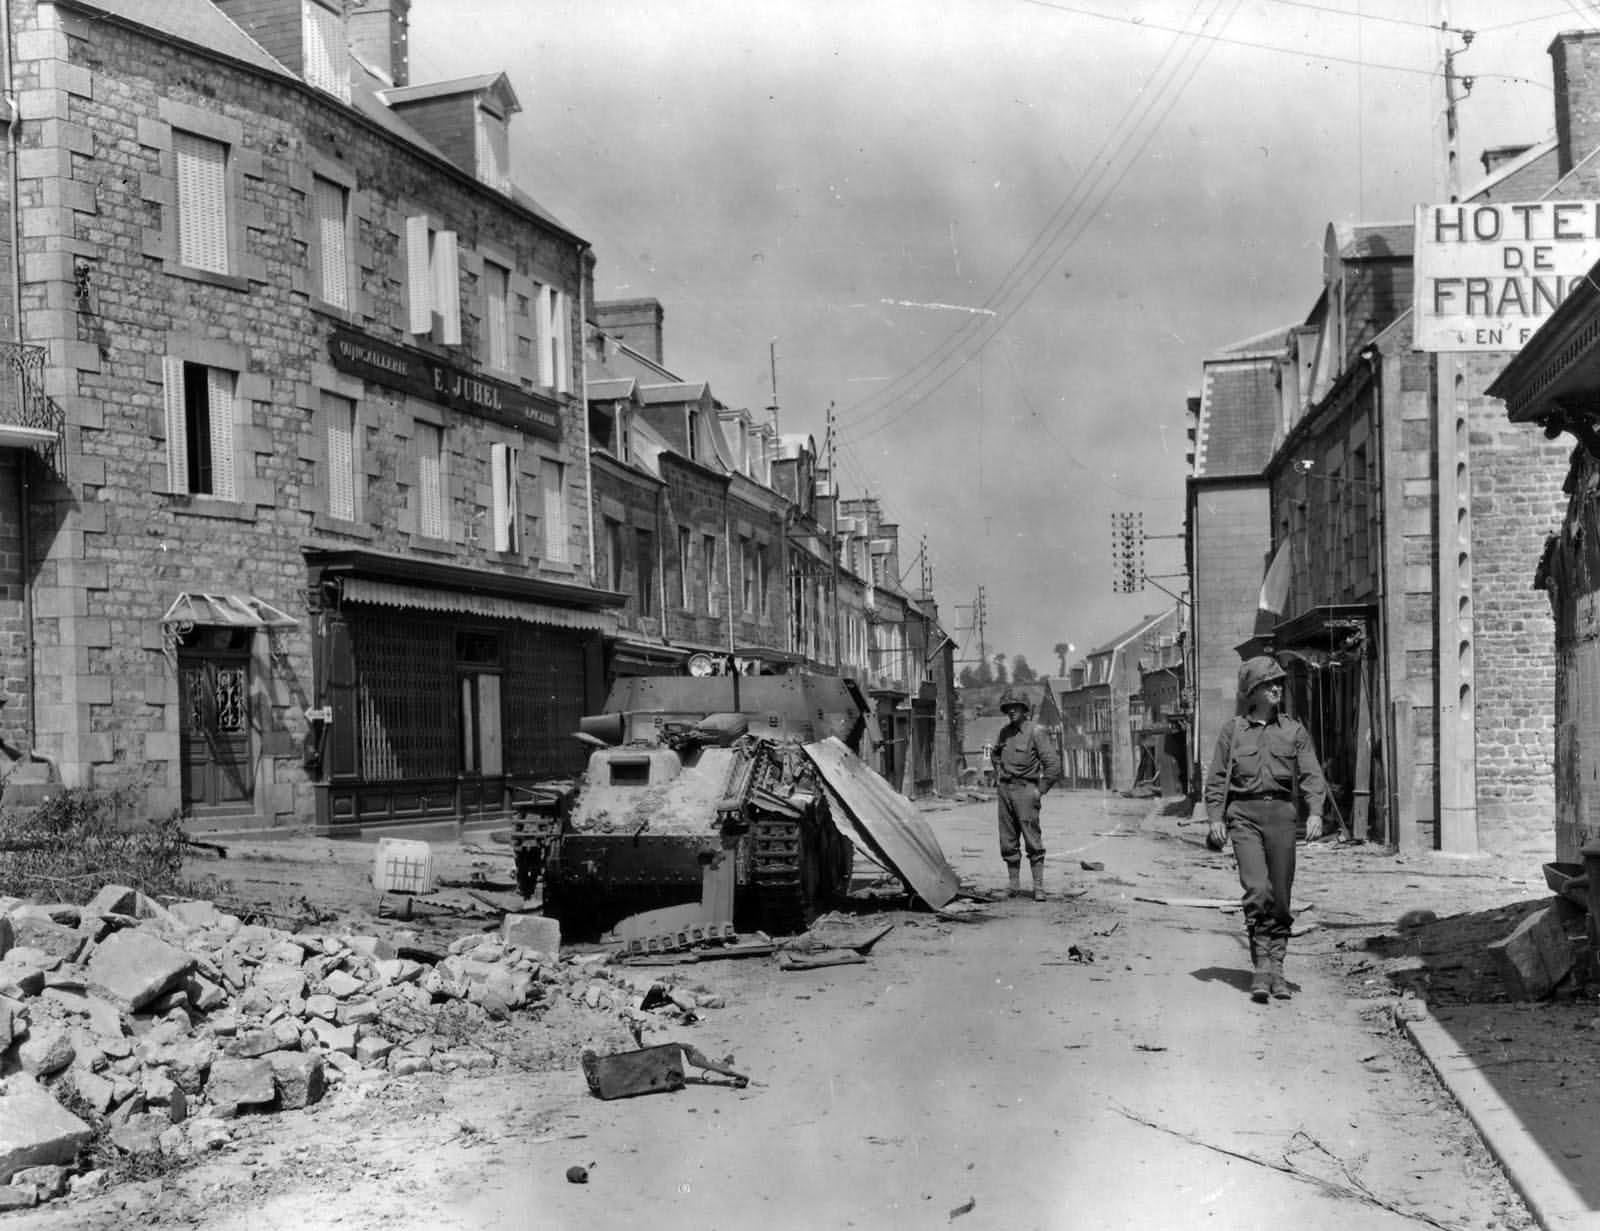 35th Infantry Division Troops And Wrecked Flakpanzer 38(t) In Tessy Sur Vire France 1944